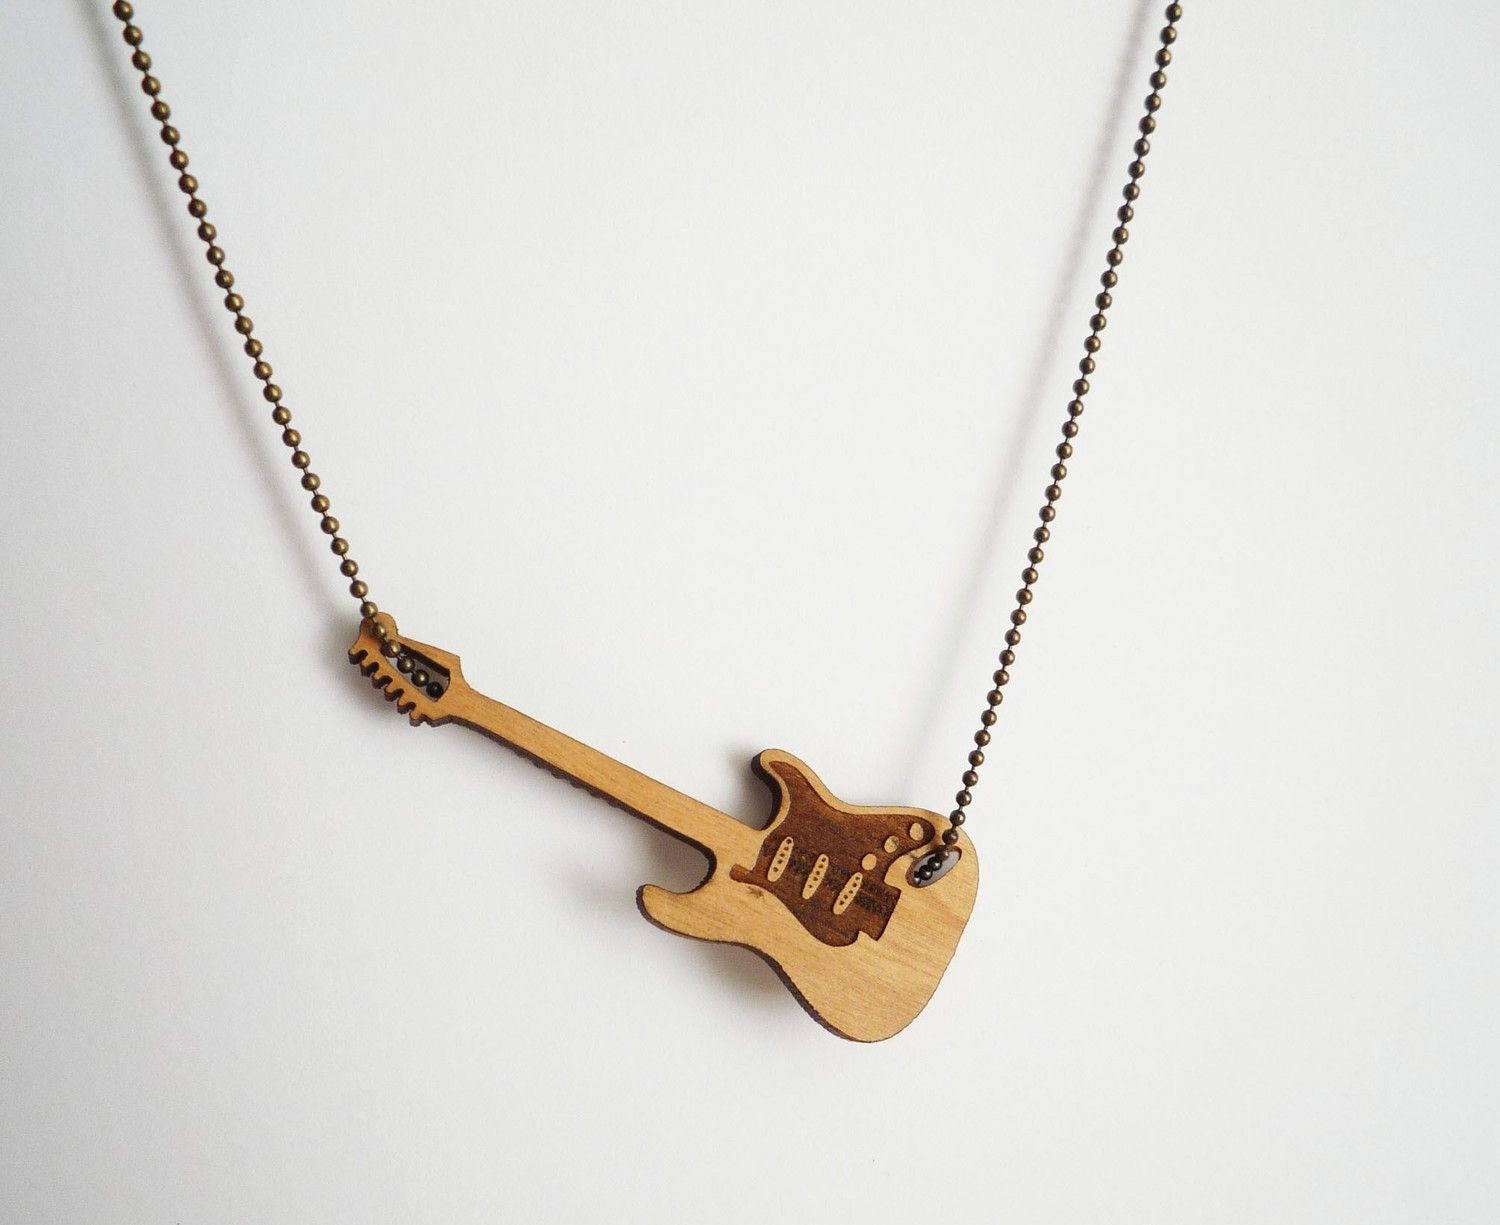 jewelry steel enamel men products mr for collier gold guitar rock hip hop necklace pendant stainless color peachy women